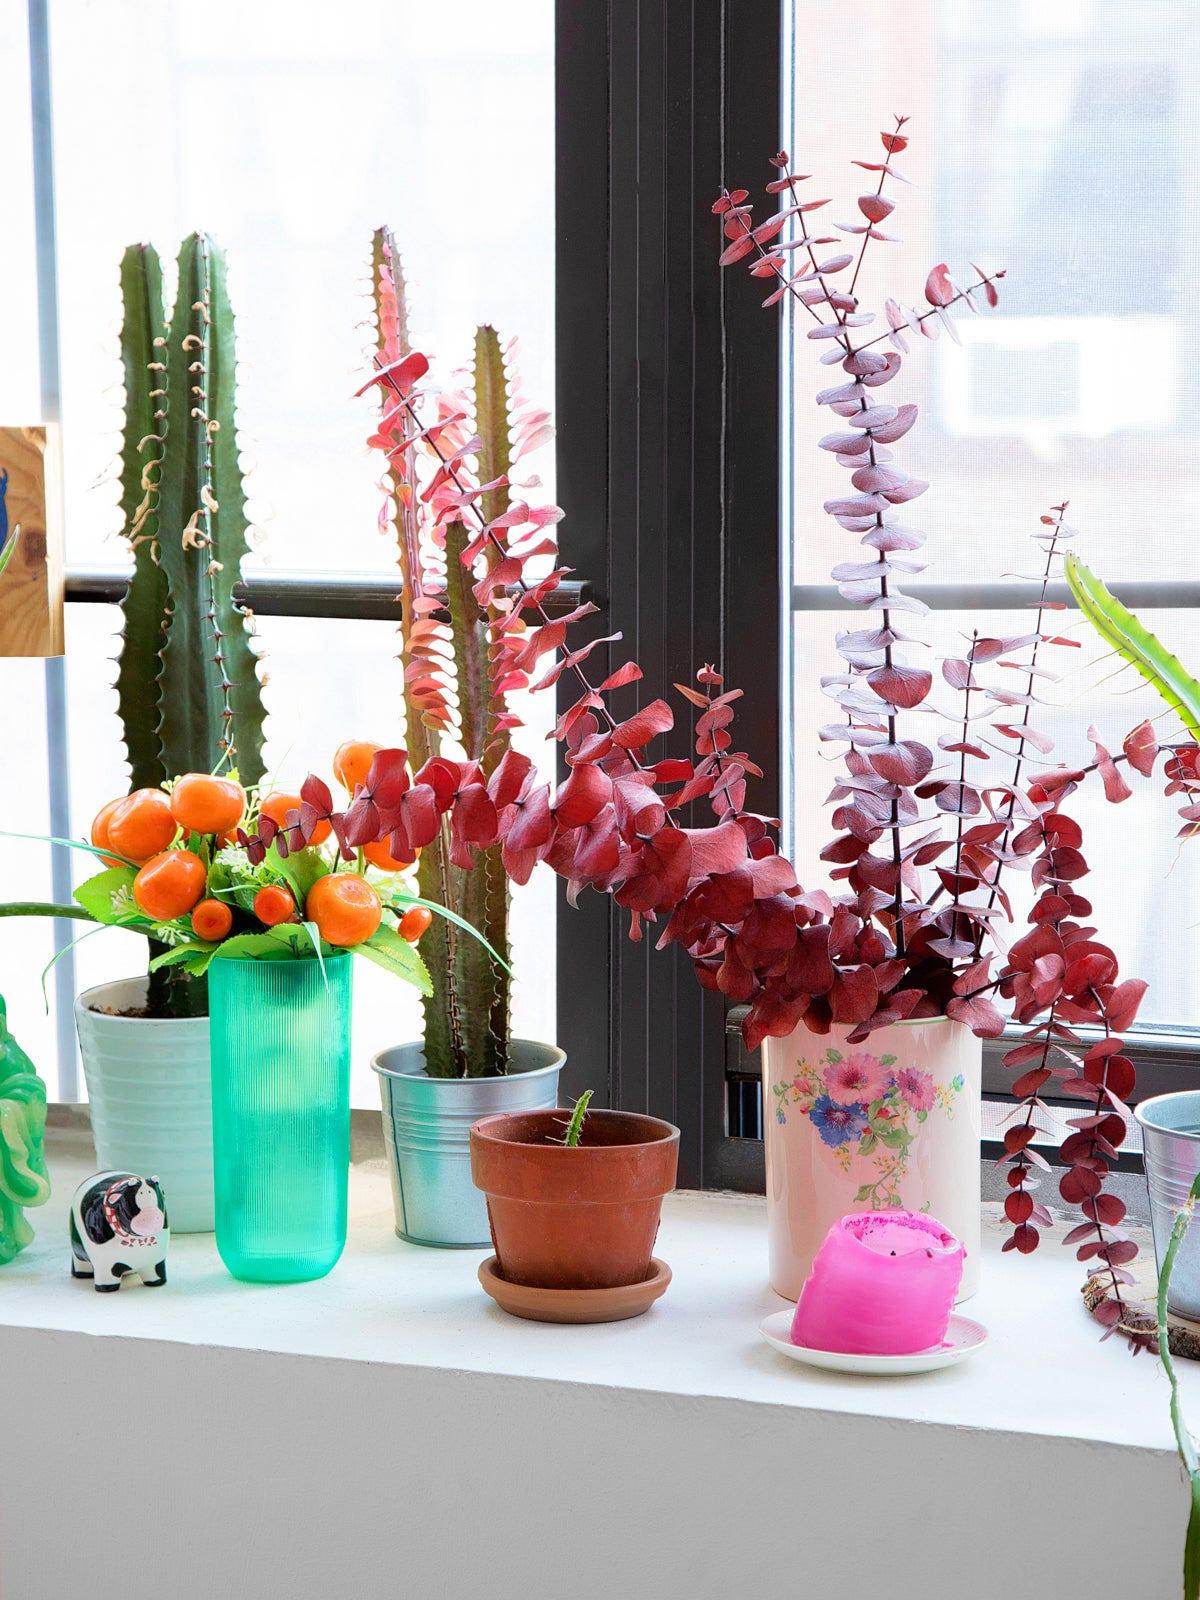 colorful plants on a window sill